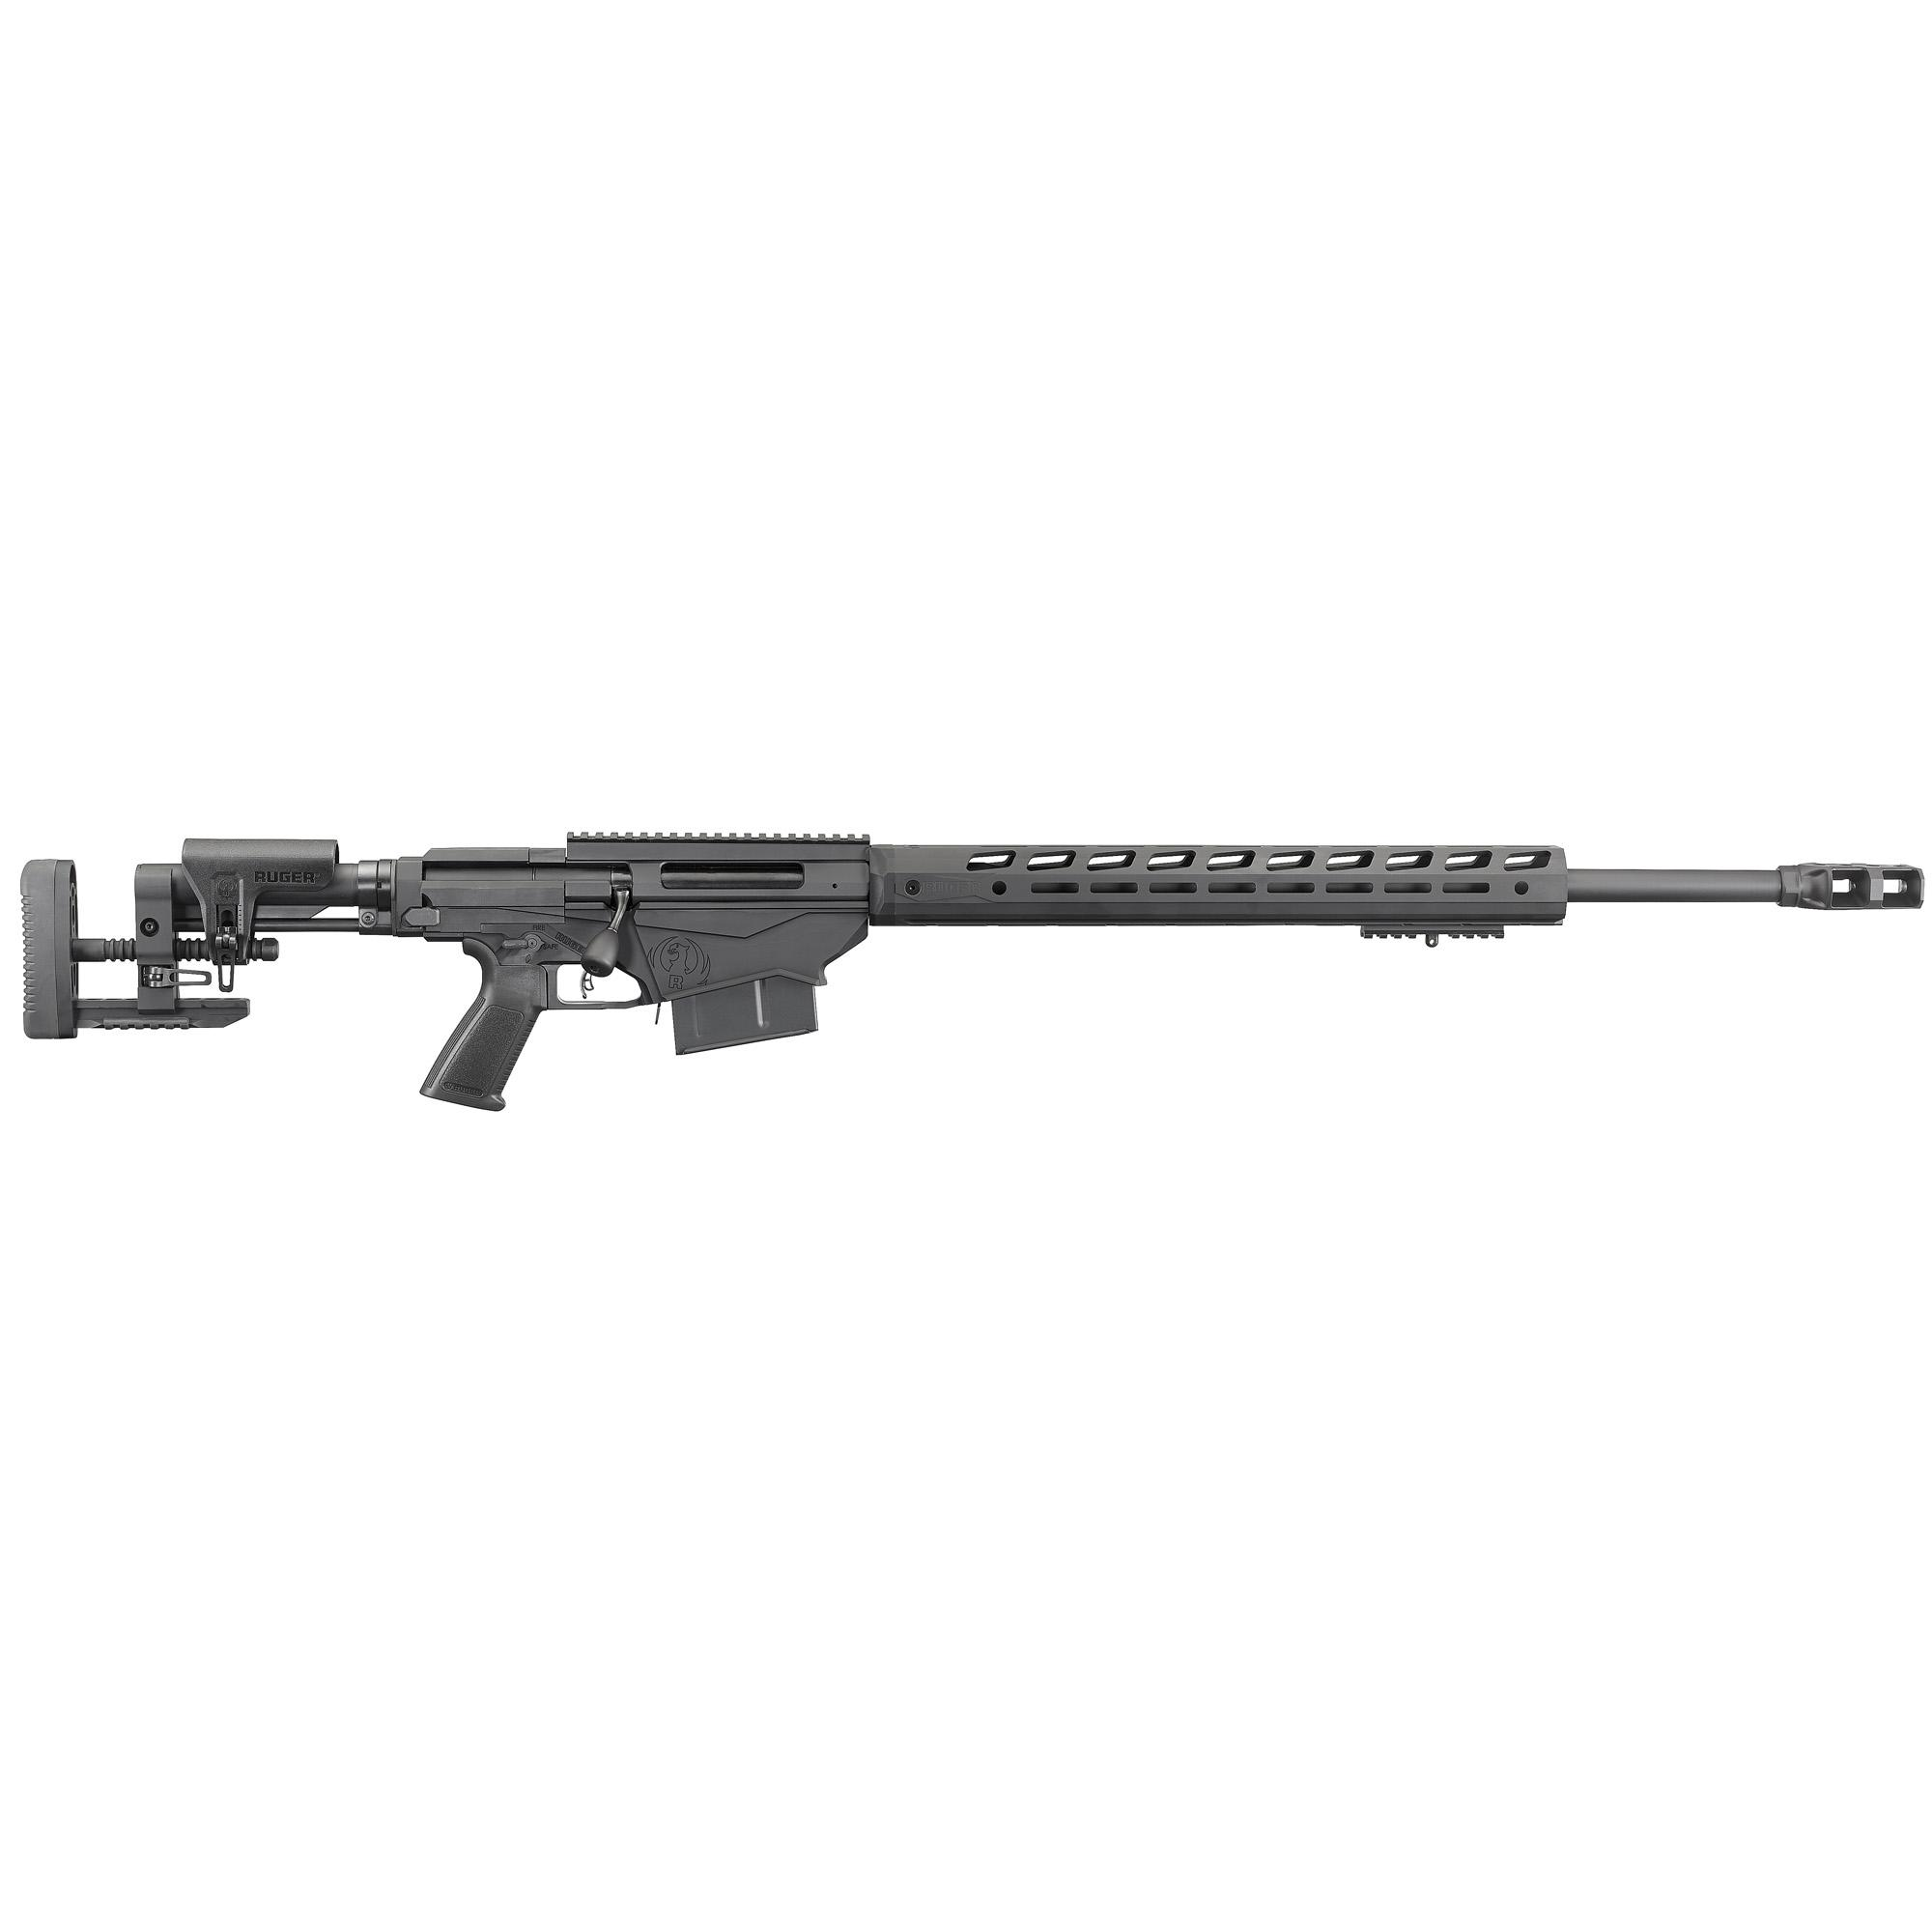 Ruger Precision Rifle 338 Lapua 18080 Photo 1